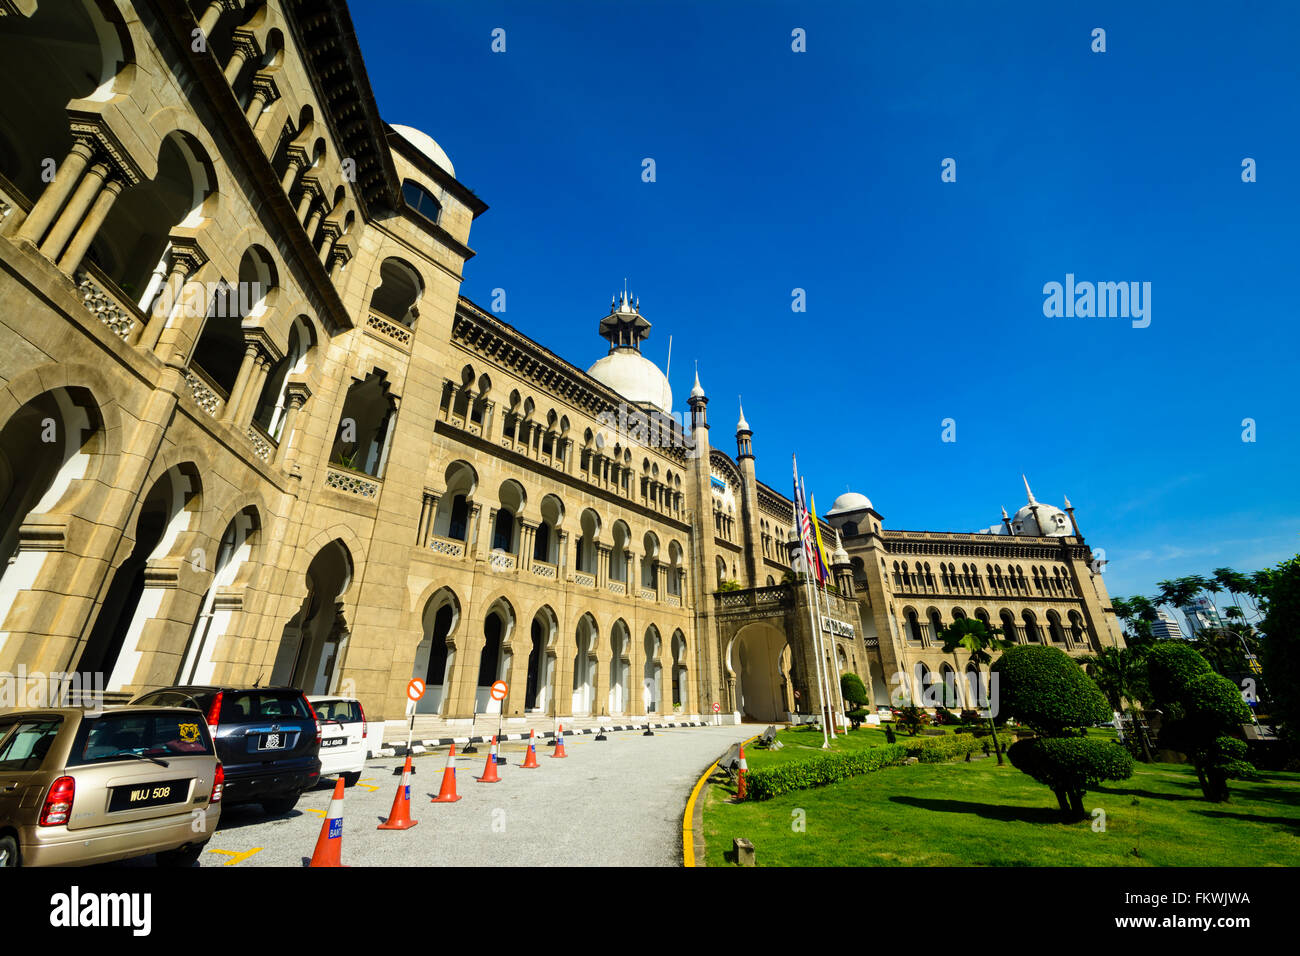 KTM Headquarters building (formerly the FMS Railway Administration Services Central Office) - Stock Image